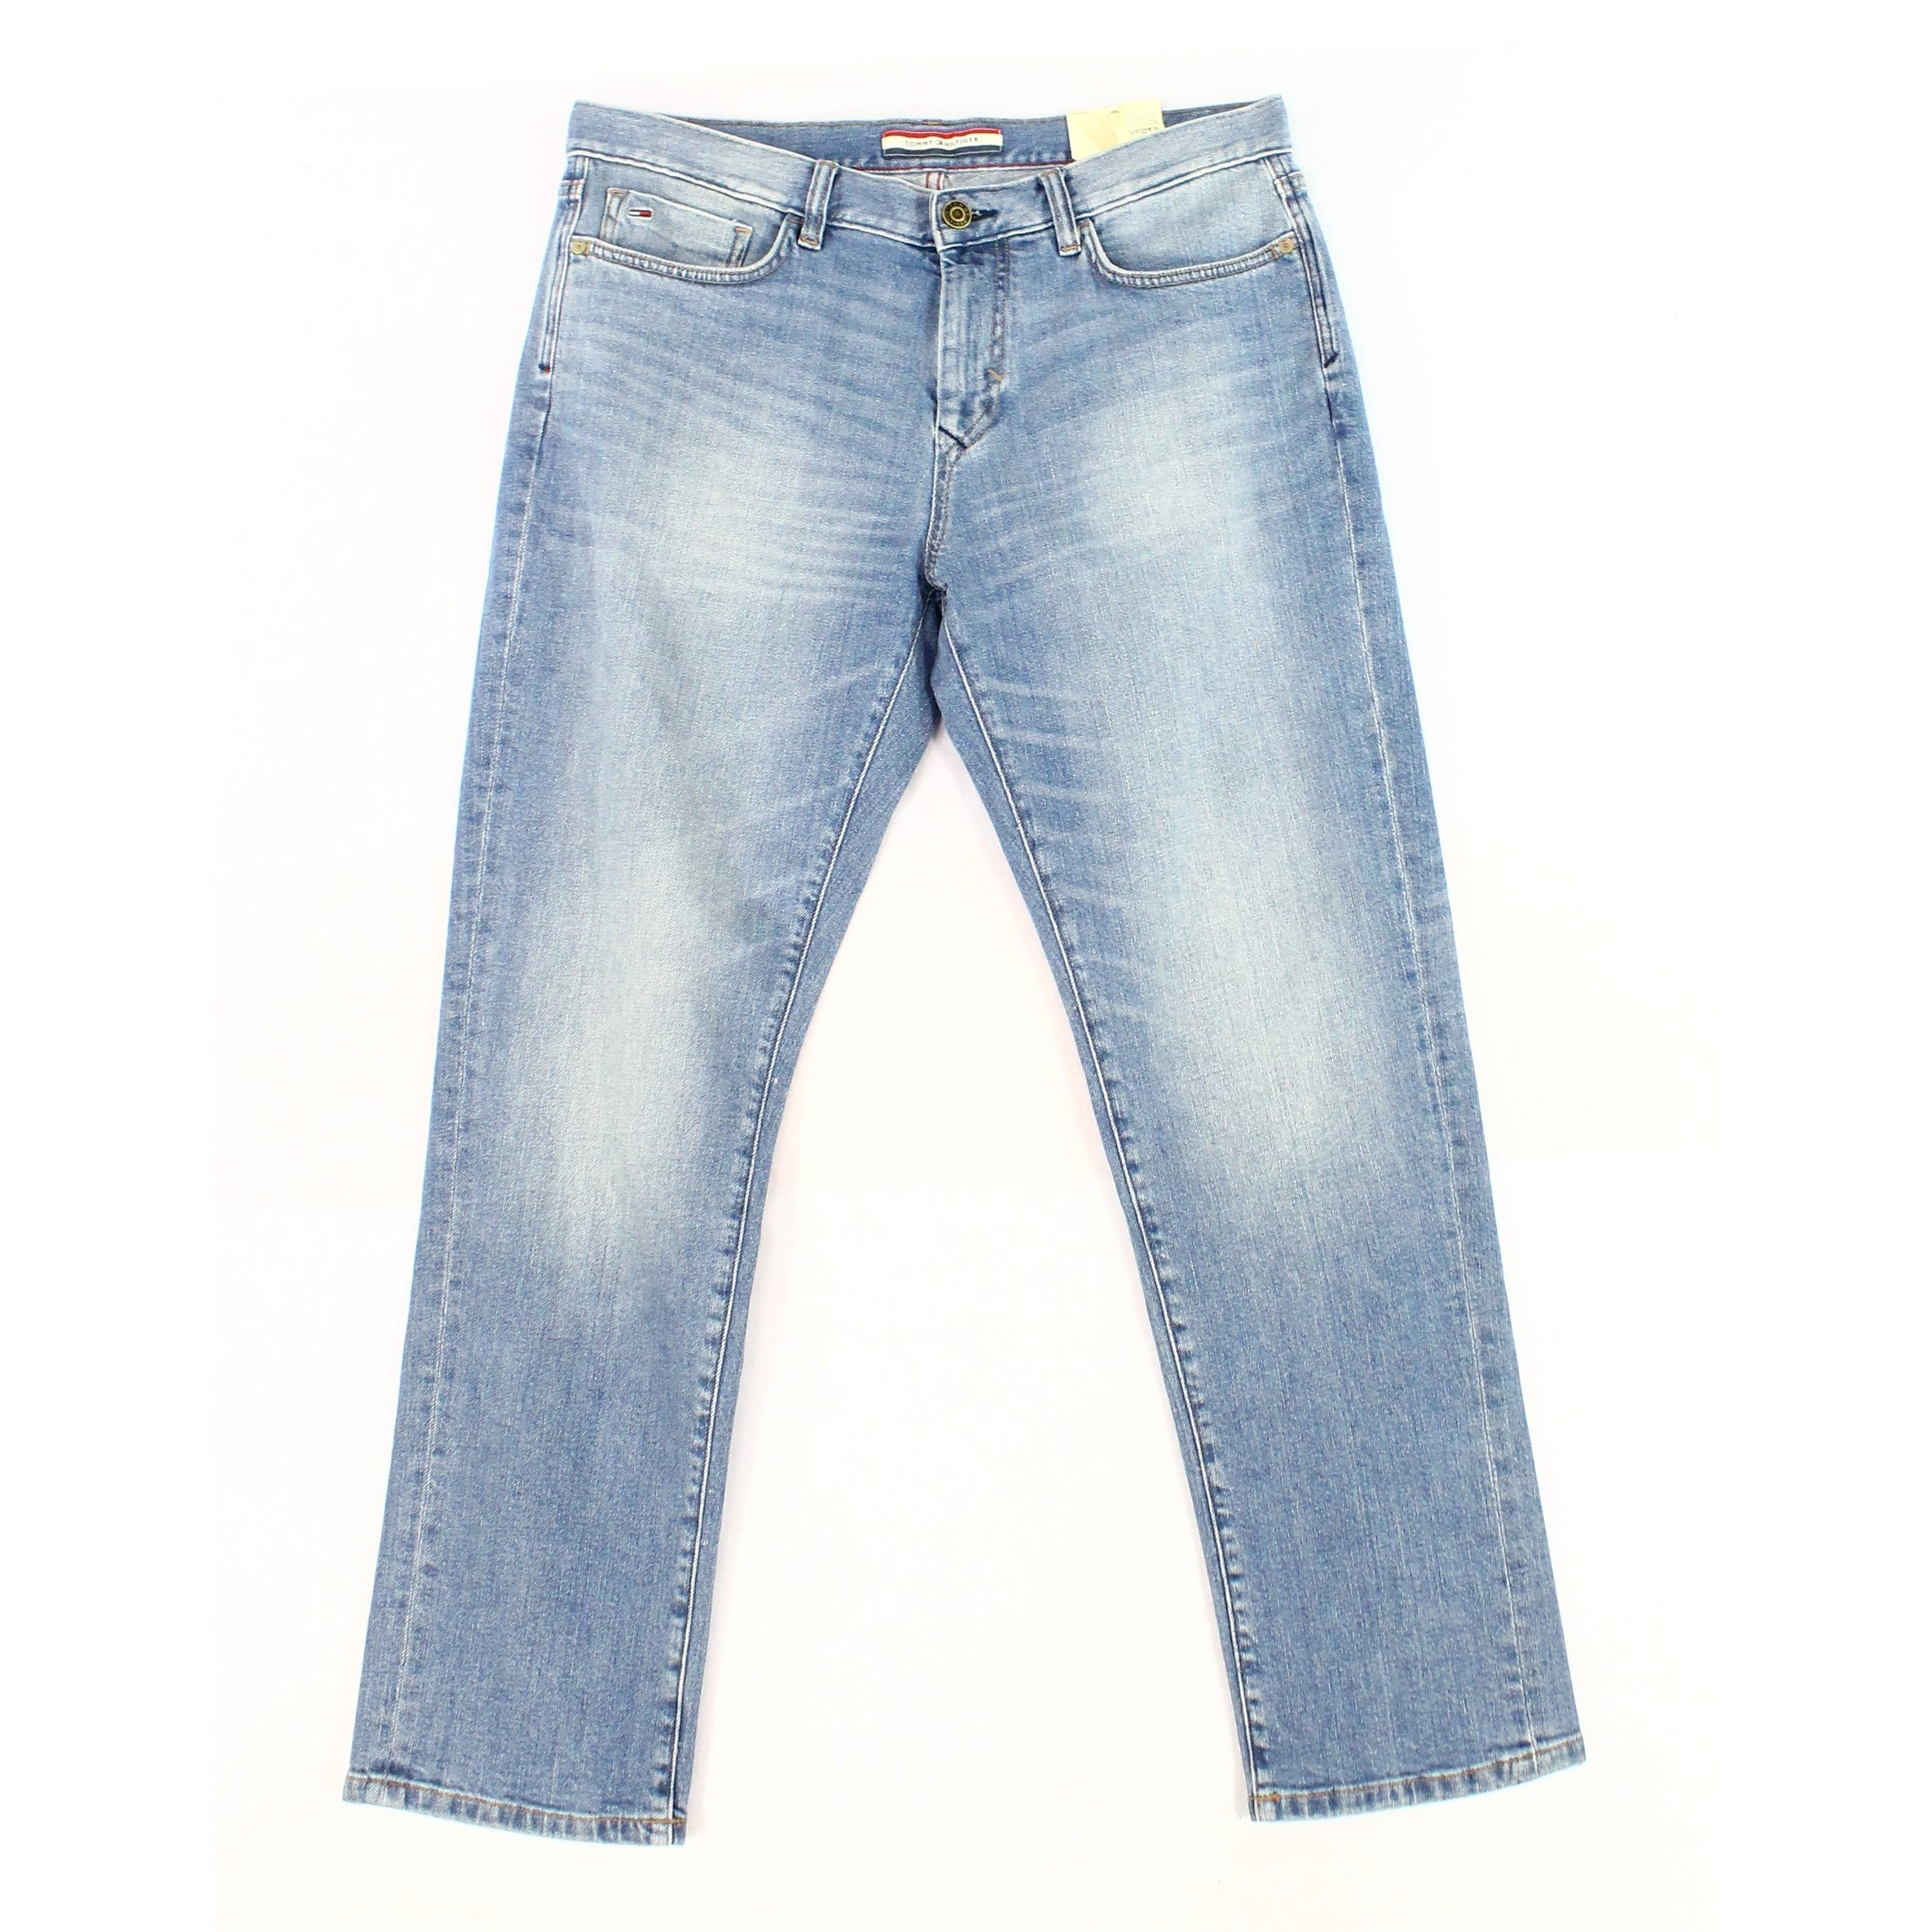 dc9618fe Shop Tommy Hilfiger Blue Mens Size 32X32 Slim Athletic Fit Stretch Jeans -  Ships To Canada - Overstock - 27996710